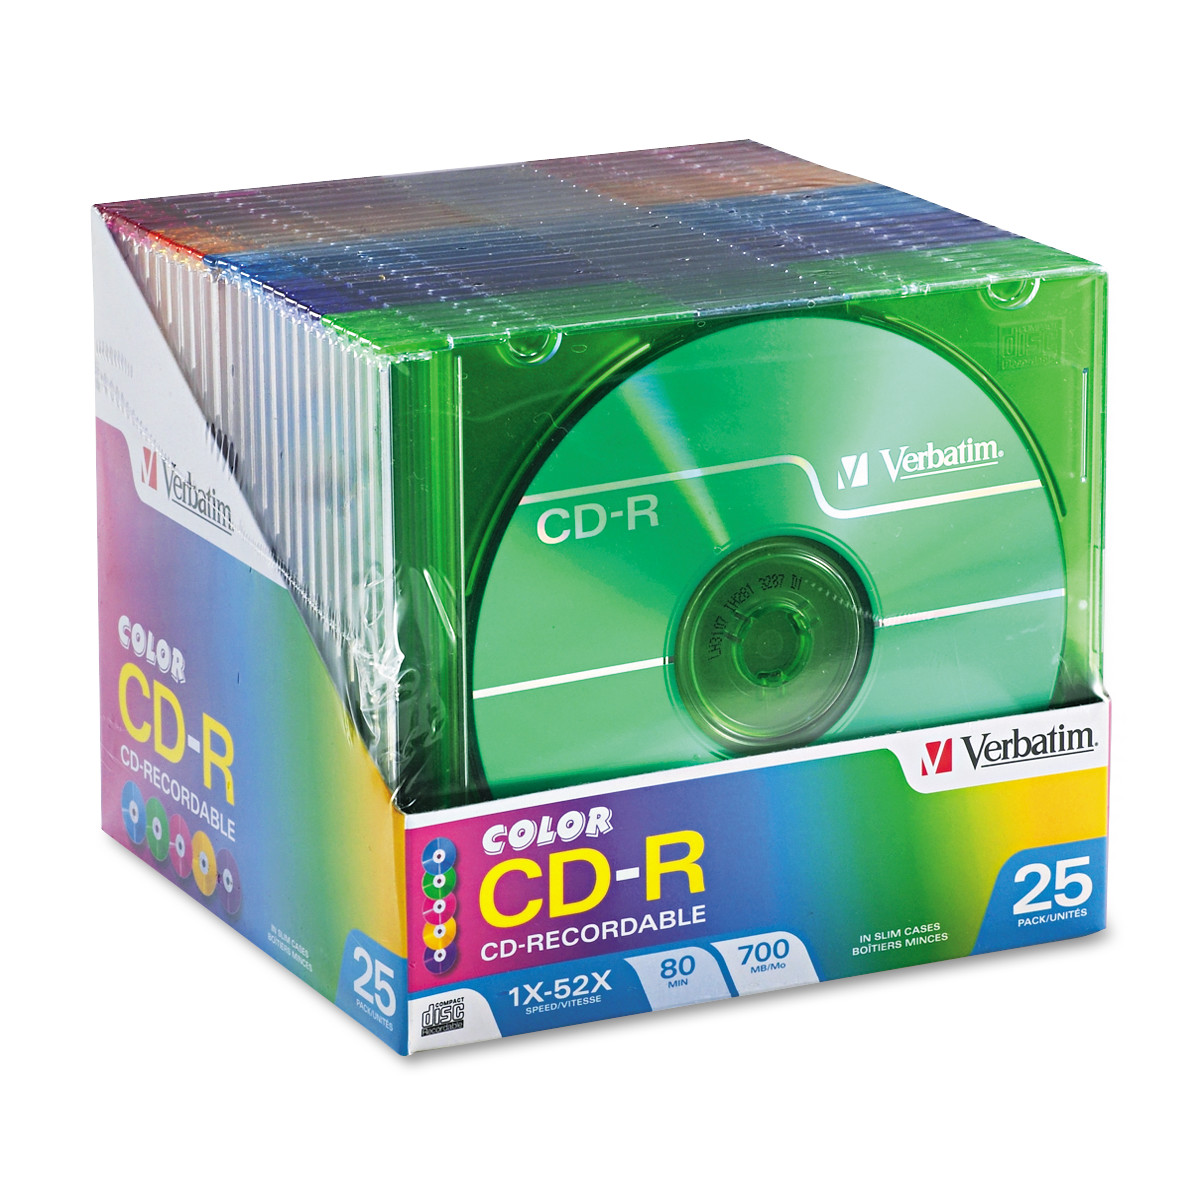 Verbatim CD-R Discs, 700MB/80min, 52x, Slim Jewel Cases, Assorted Colors, 25/Pack